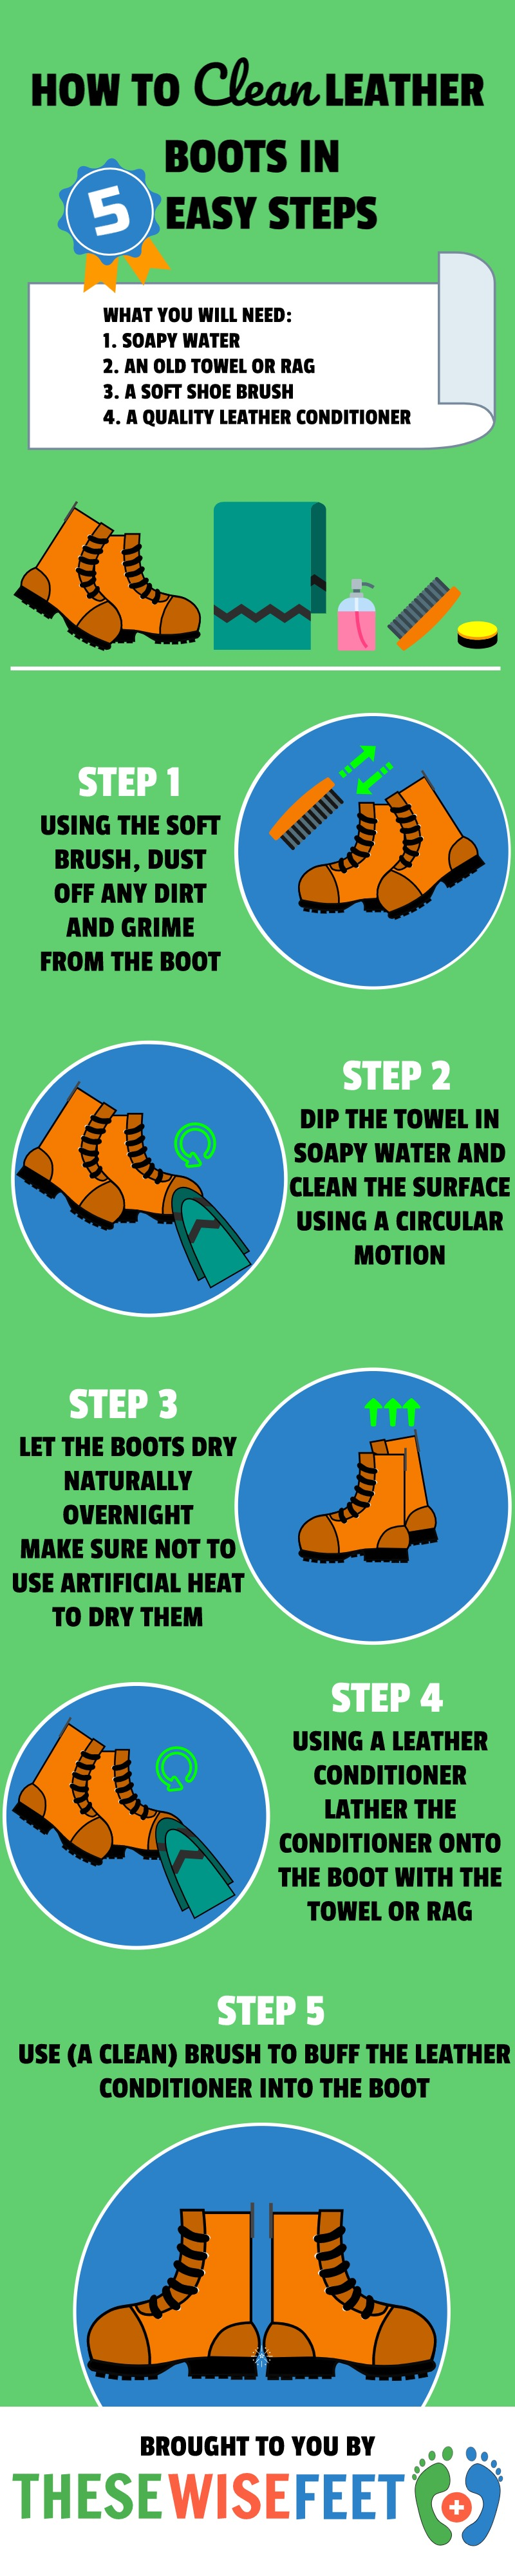 How To Clean Leather Boots At Home - Infographic